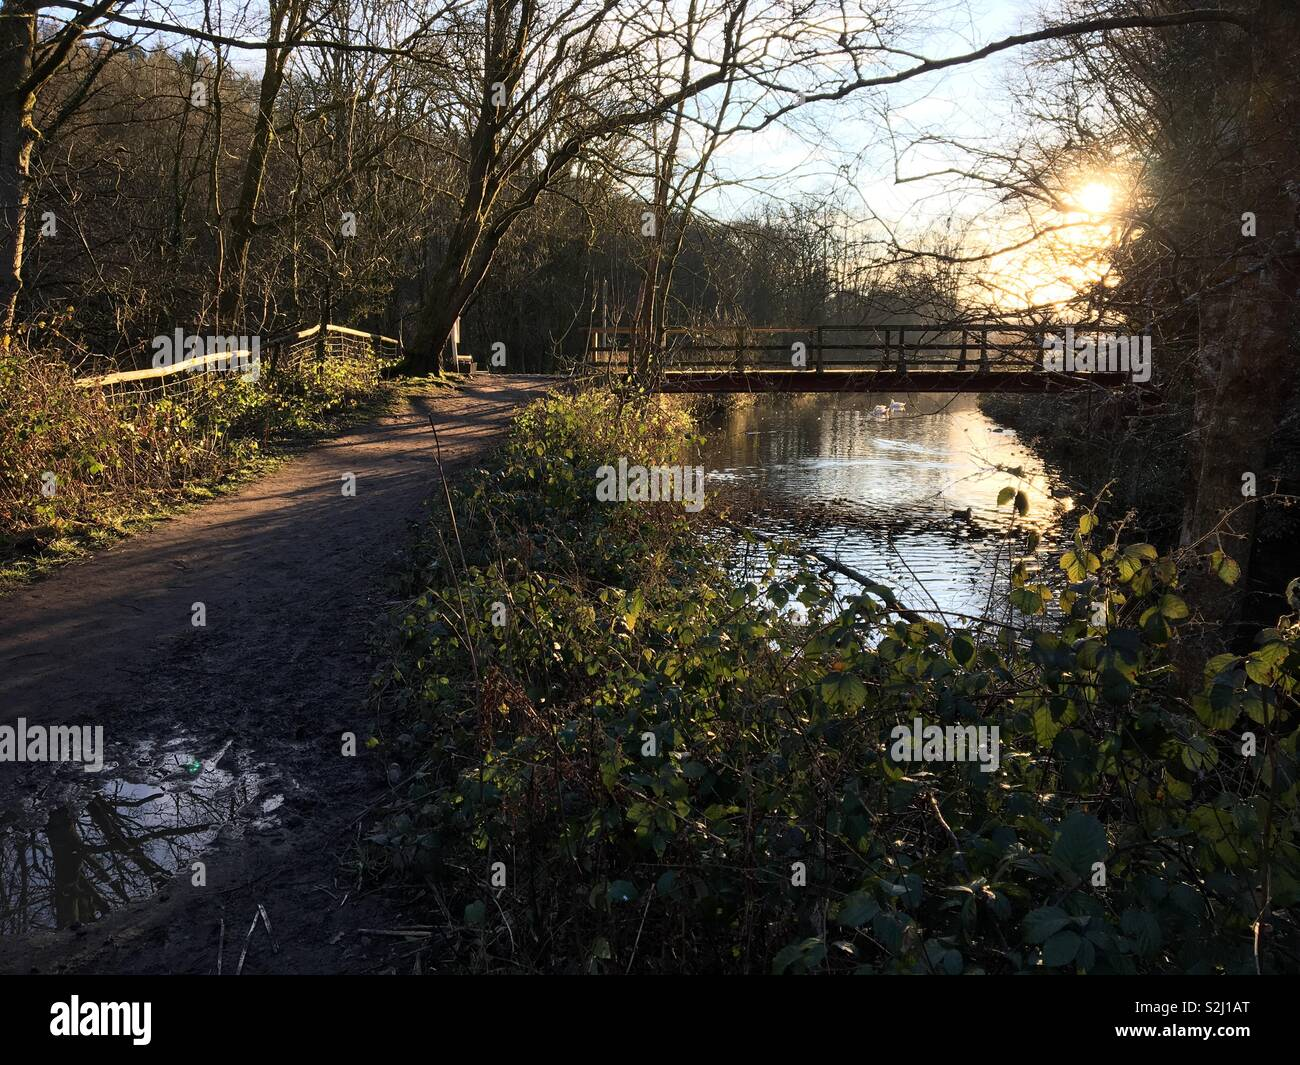 Canal bridge and towpath at sunset - Stock Image